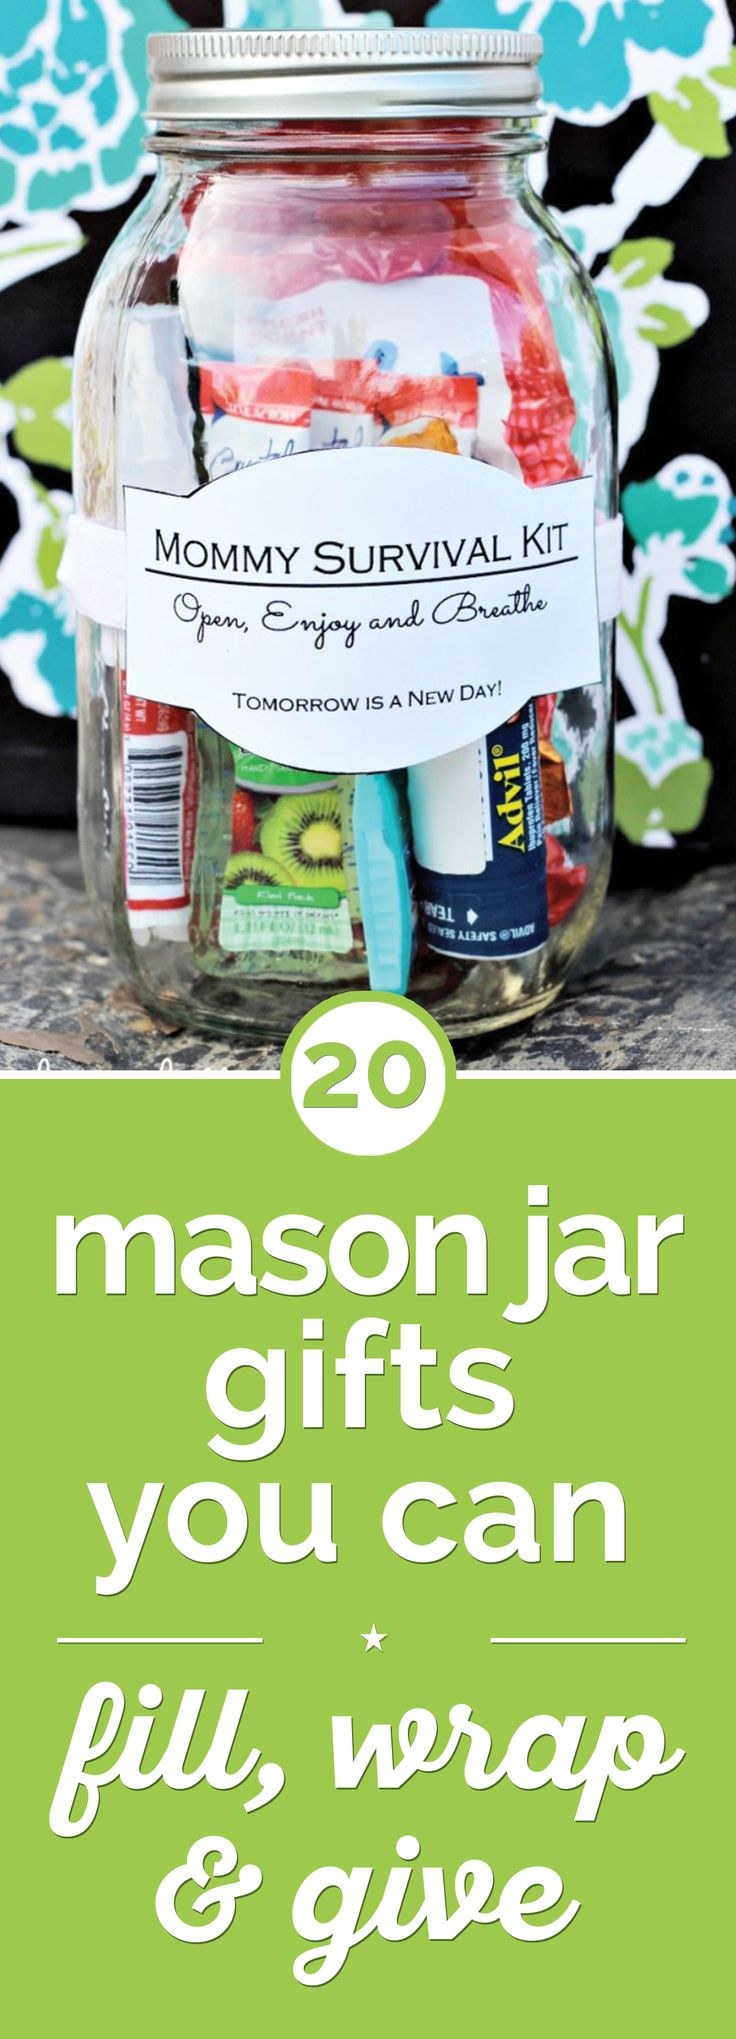 Get crafty with these gift ideas everyone will appreciate!